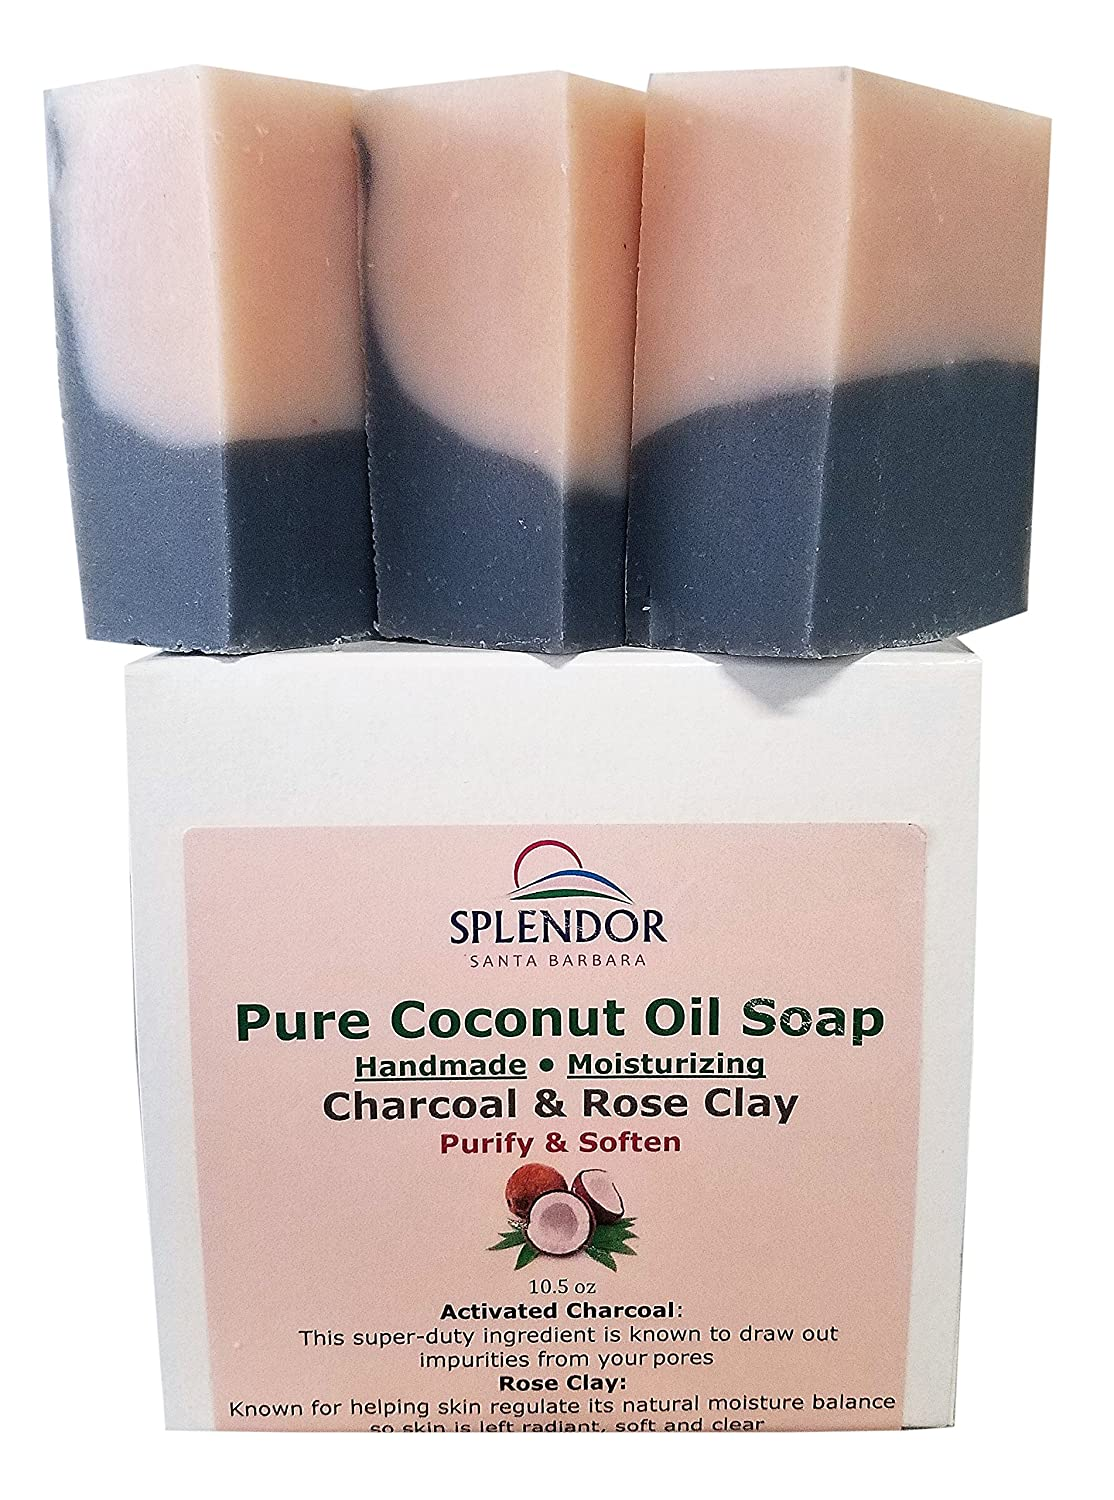 Splendor Activated Charcoal & Rose Clay Spa Face & Body Bar Soap - Pure Coconut Oil Soap. Handmade, Vegan, Natural, Moisturizing,